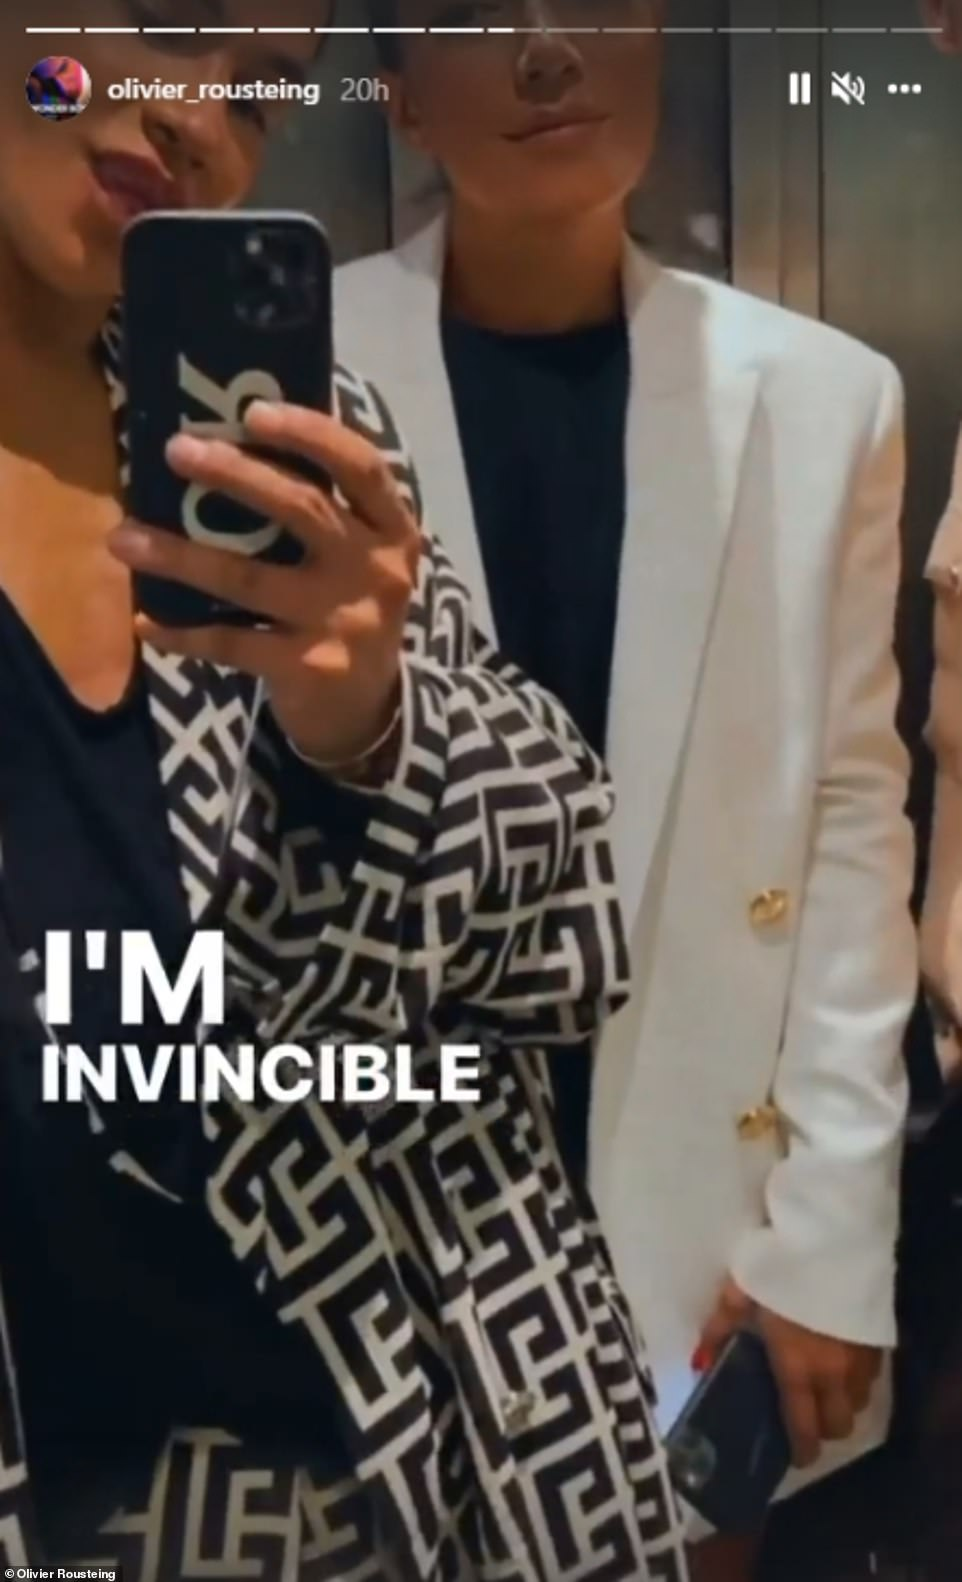 He also shared a snap of himself next to a female friend while the words 'I'm invincible' flashed up on-screen